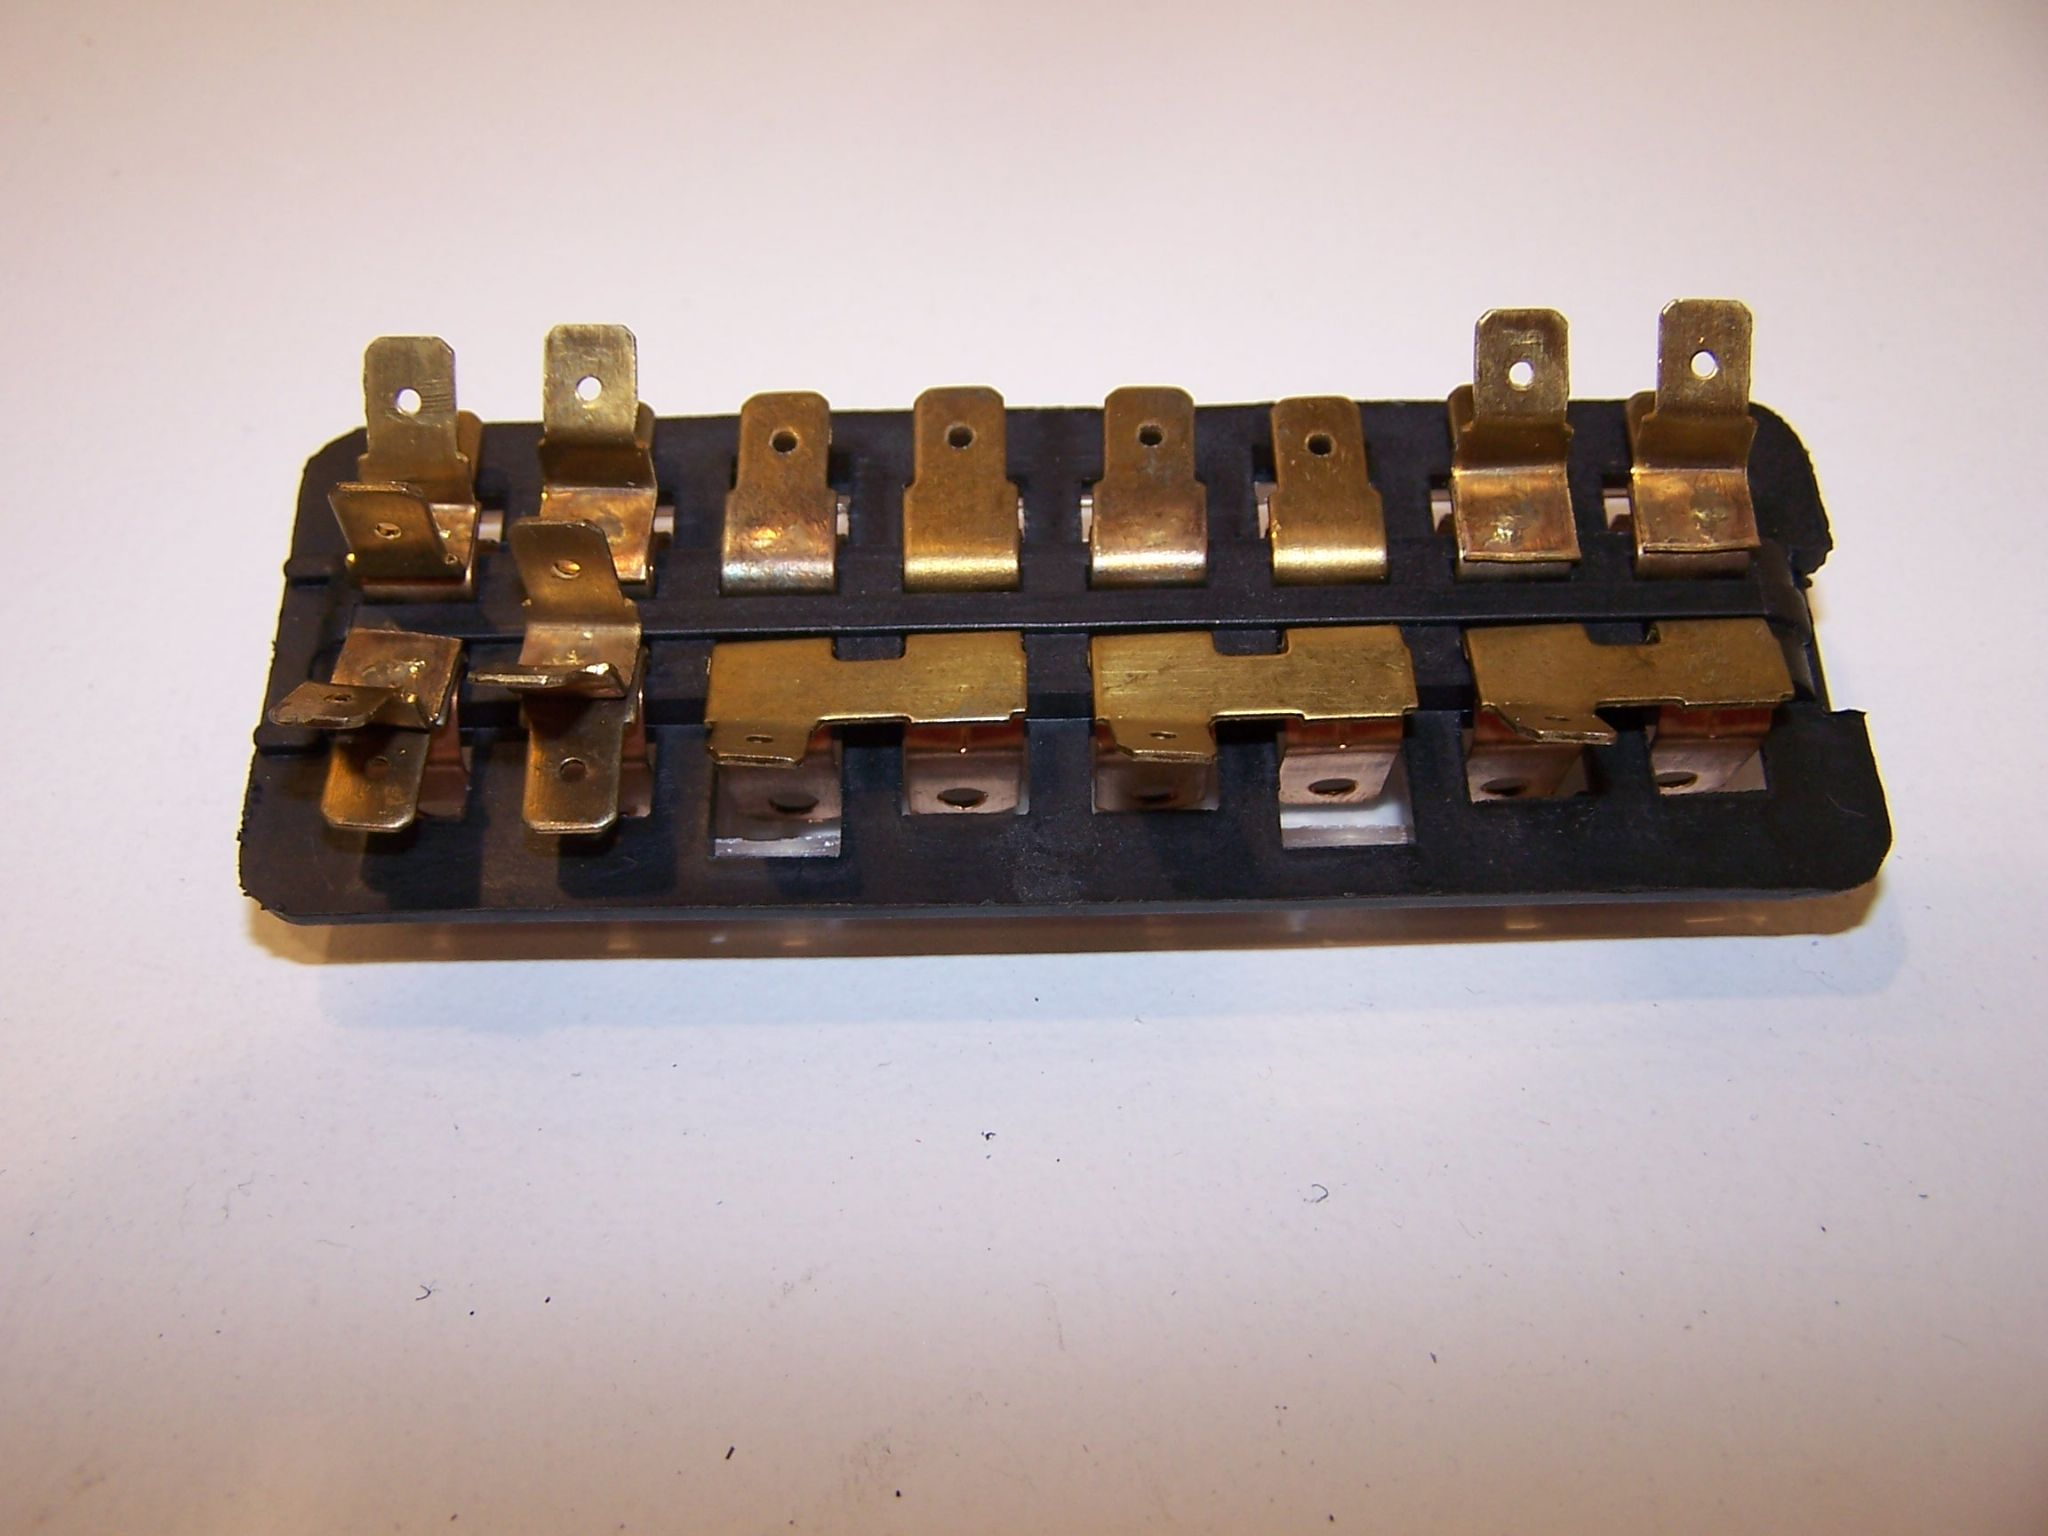 1967 vw bug fuse box fuse box with cover 8 row vw beetle 1960-1966 t2 split ... #6